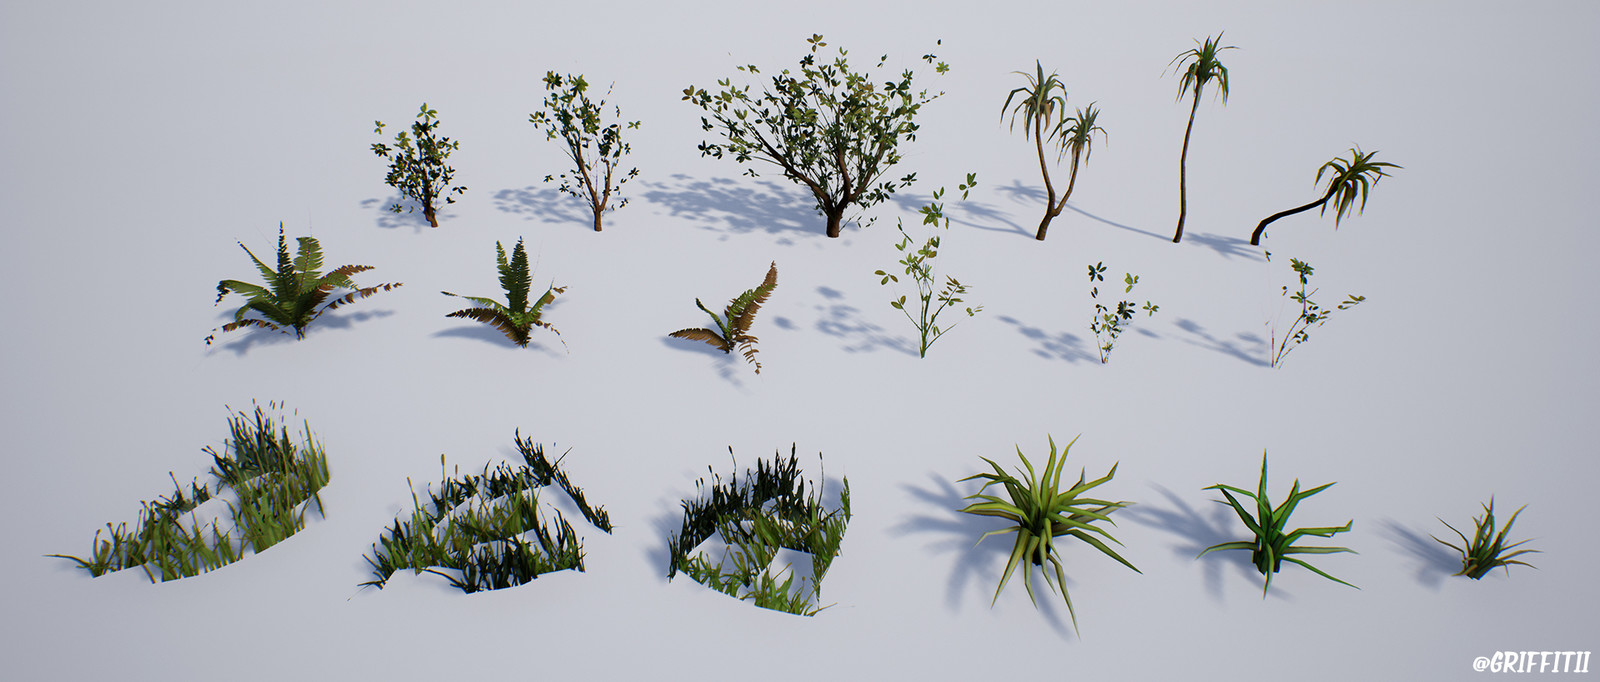 Foliage assets used in the environment